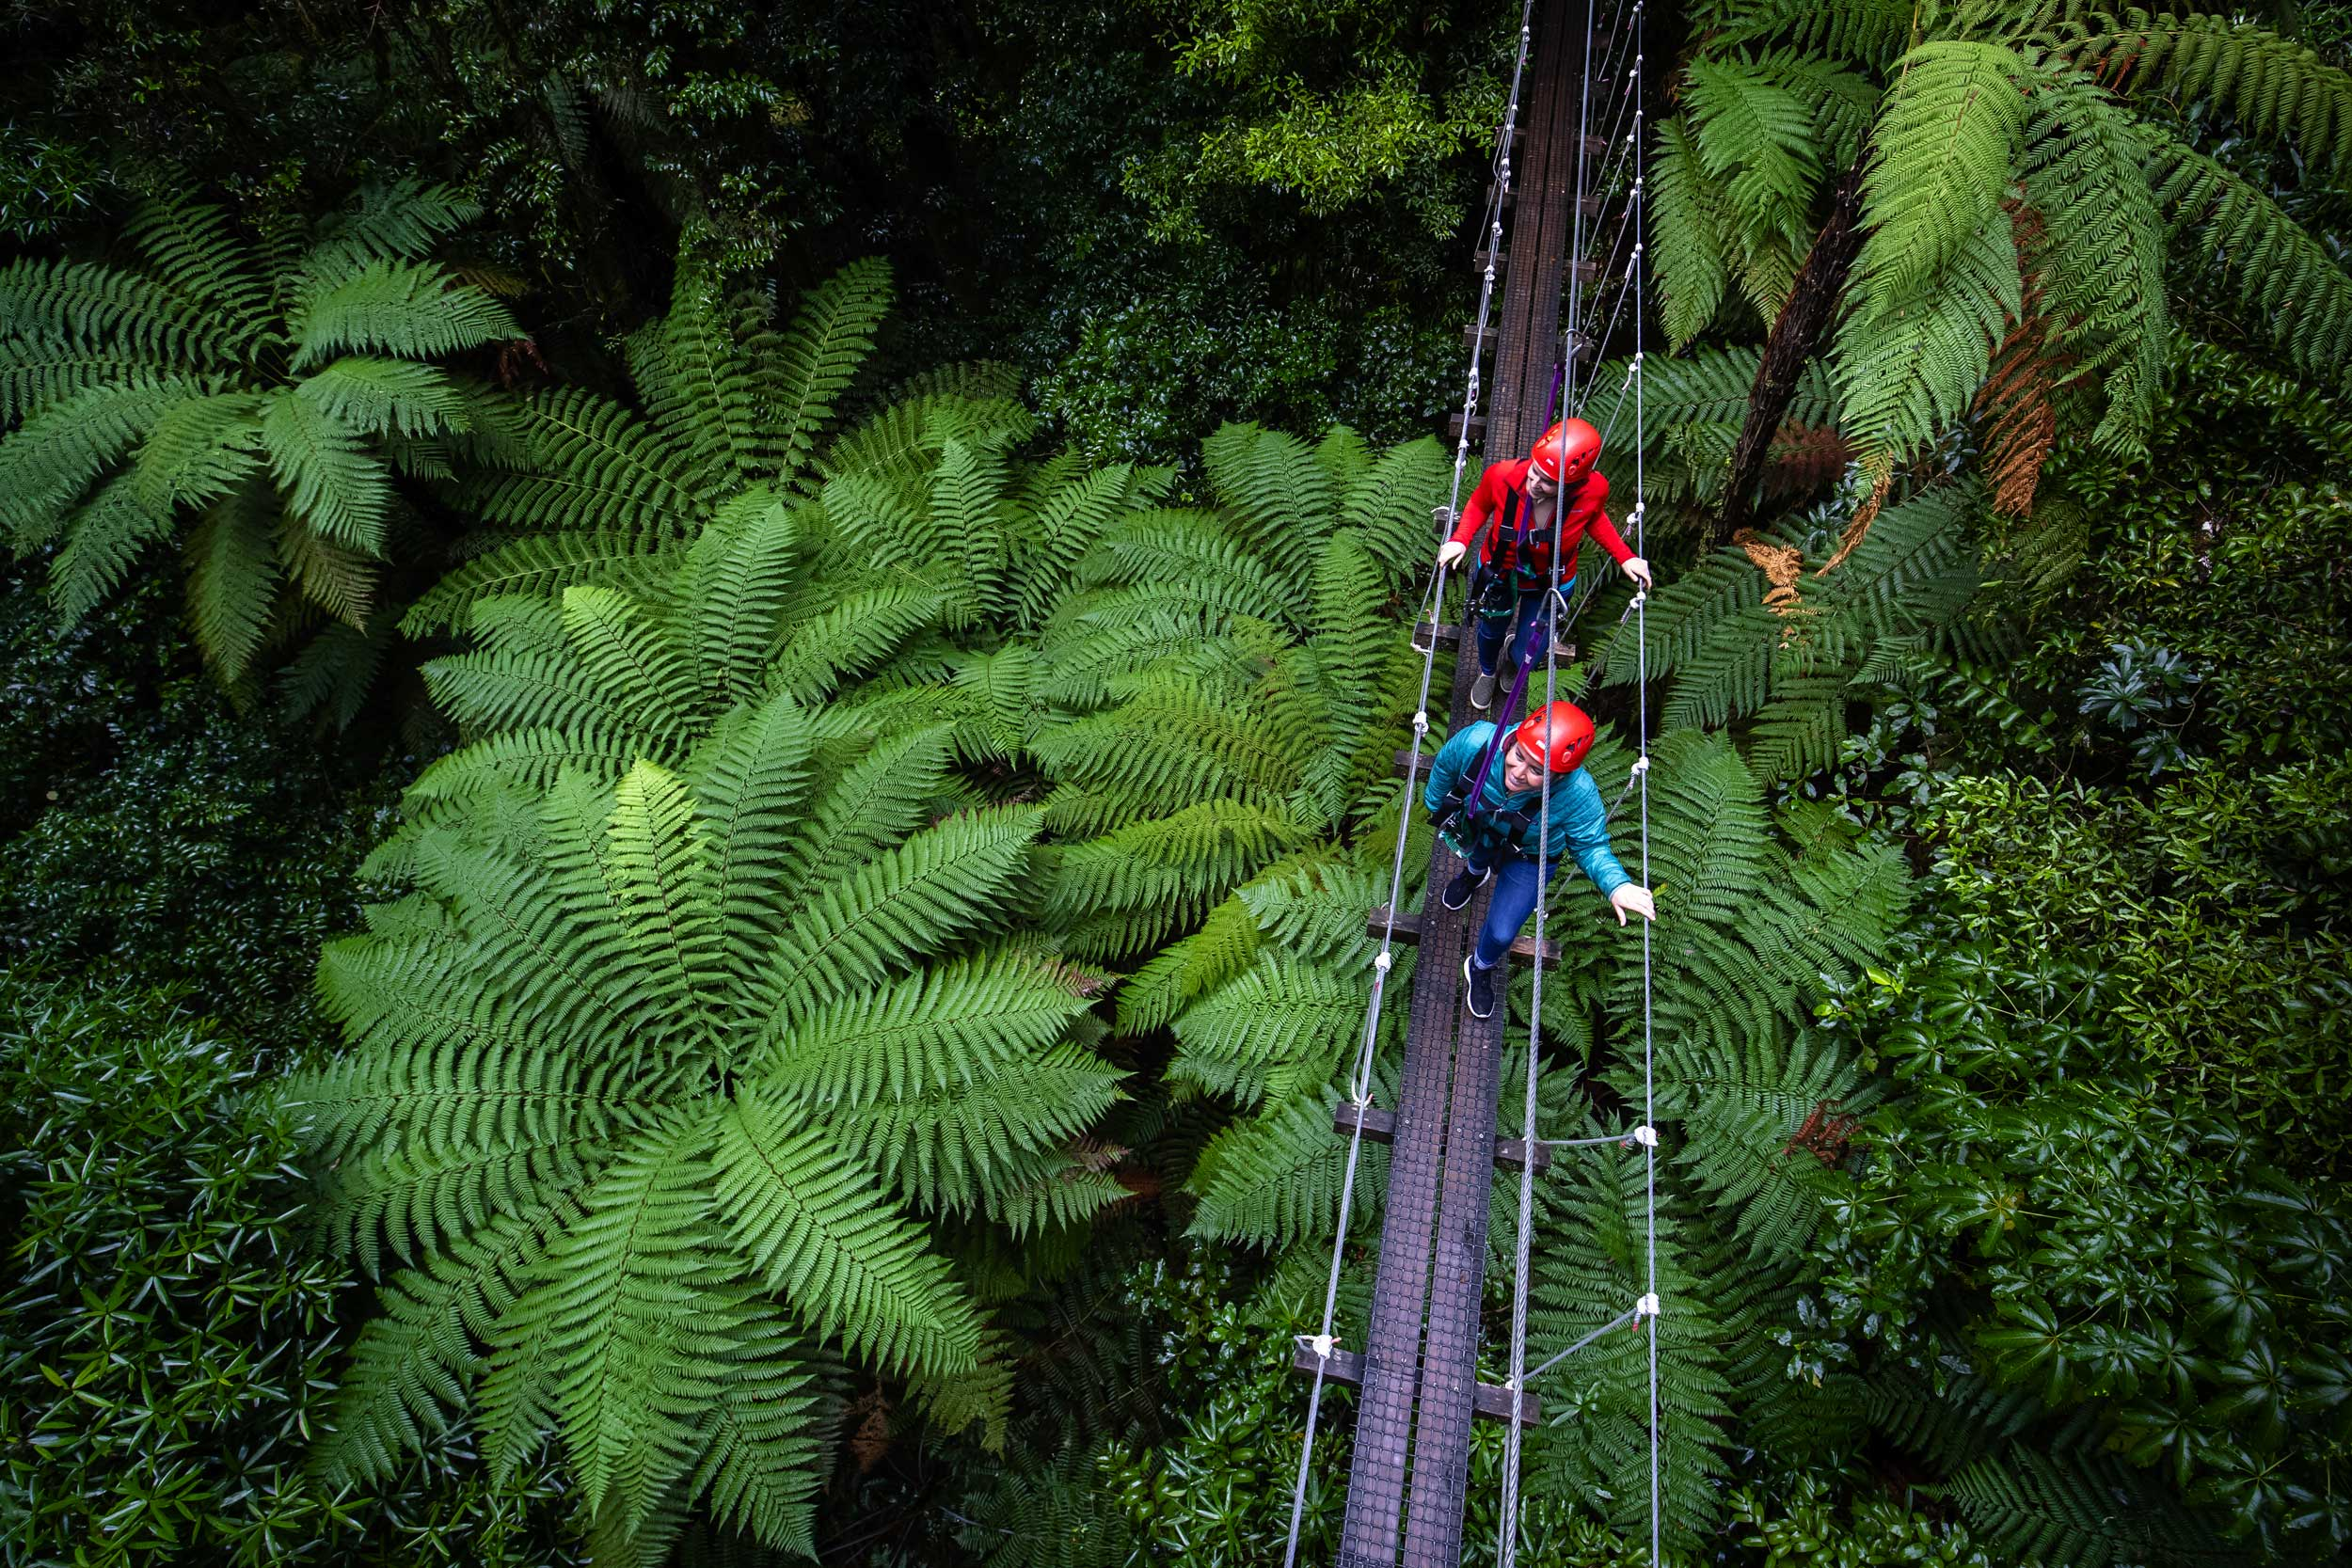 Two women on a swing bridge above native New Zealand fern